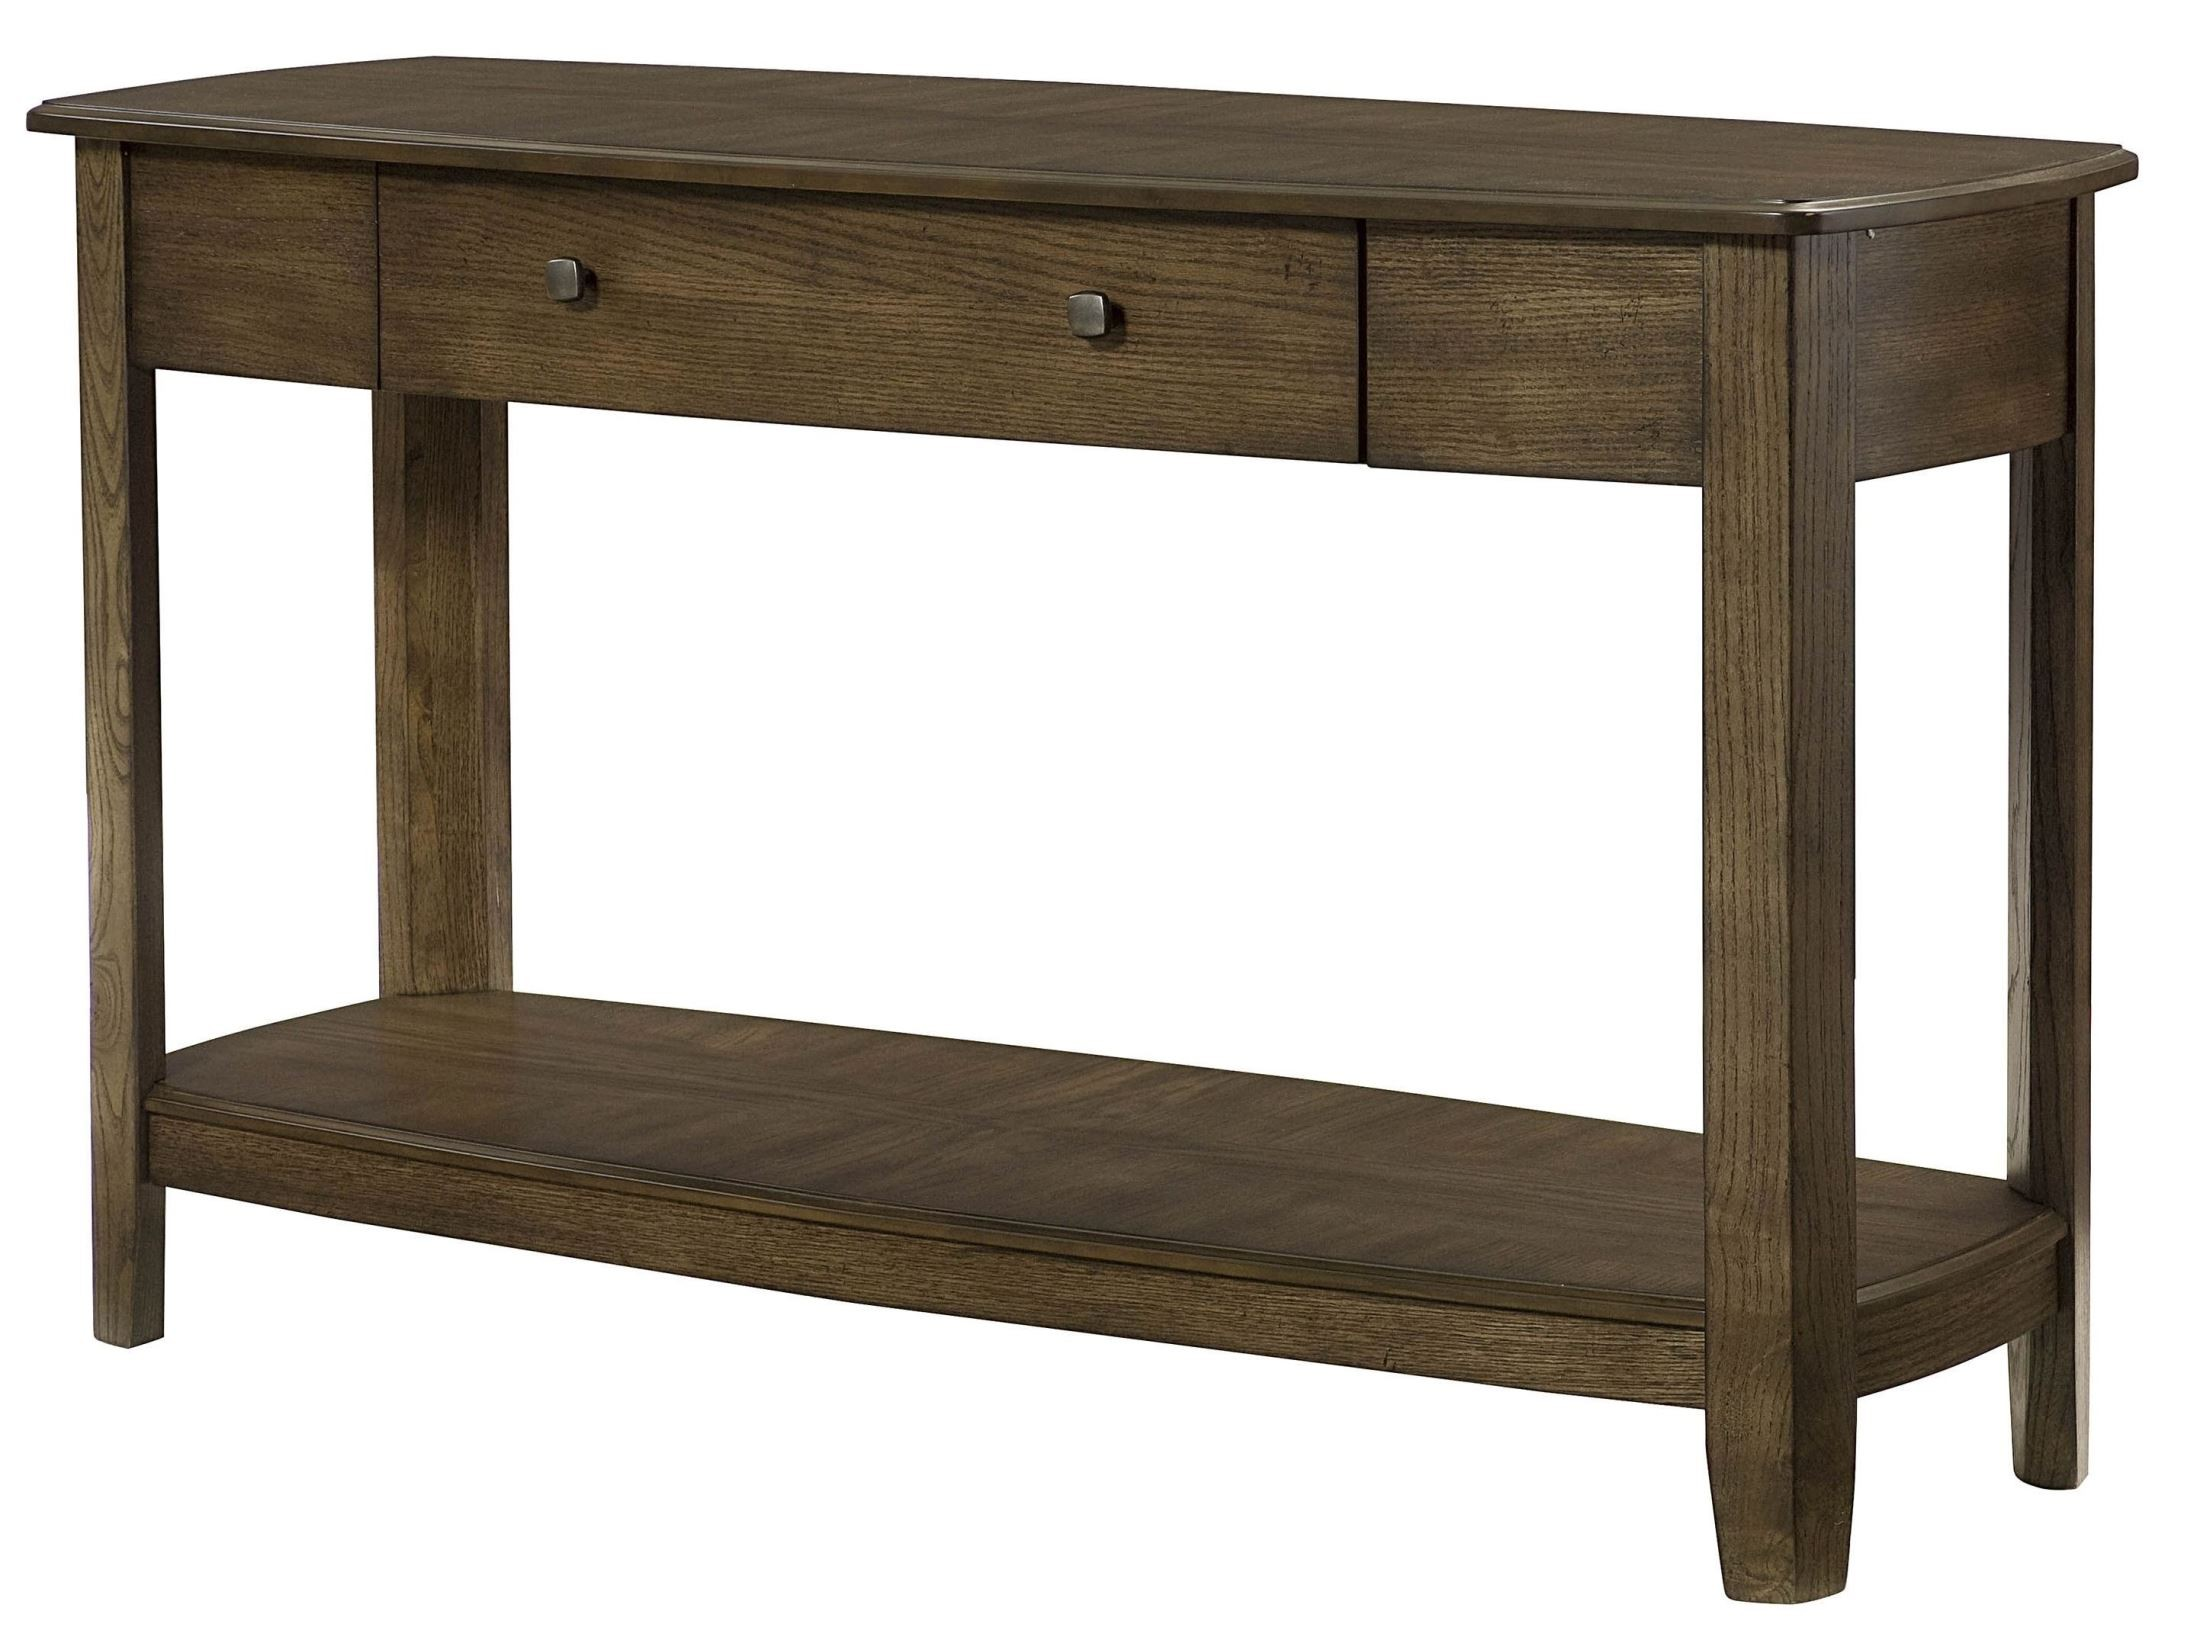 Primo warm medium brown sofa table from hammary 446 925 for 5 sofa table